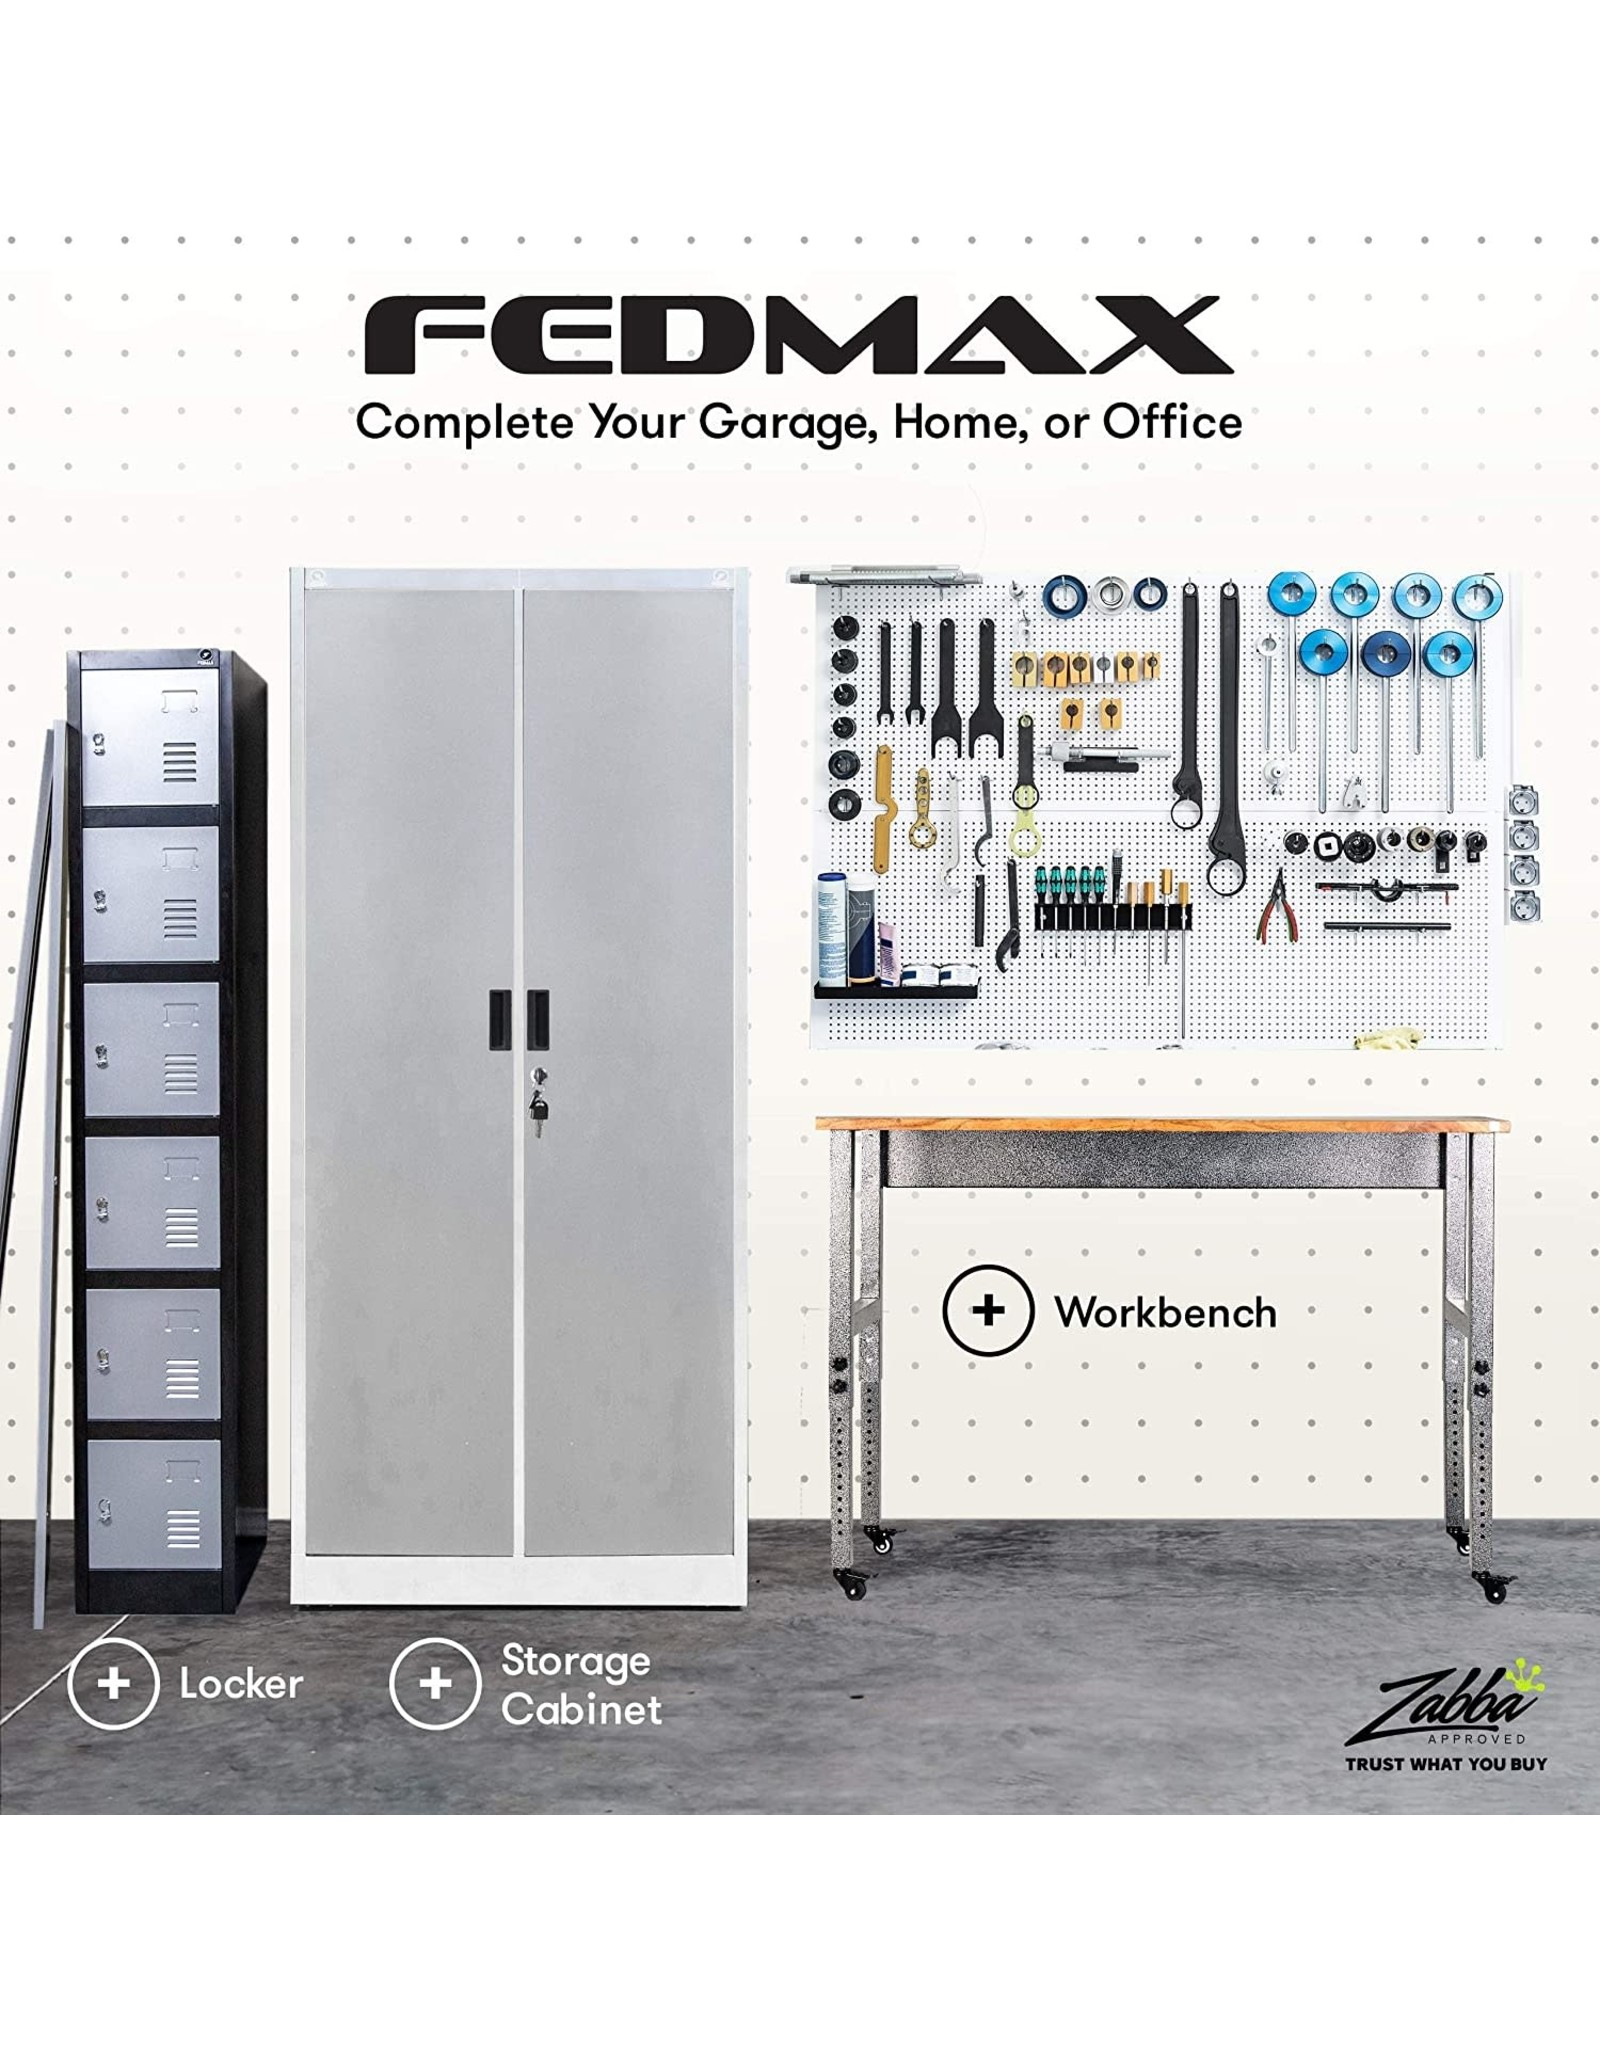 """Fedmax Fedmax Metal Storage Cabinet - 71"""" Tall w/Locking Doors & Adjustable Shelves - Steel Utility Cabinets for Garage, Office, Classroom, Kitchen Pantry -70.86"""" L x 31.5"""" W x 15.75"""" D  Black"""